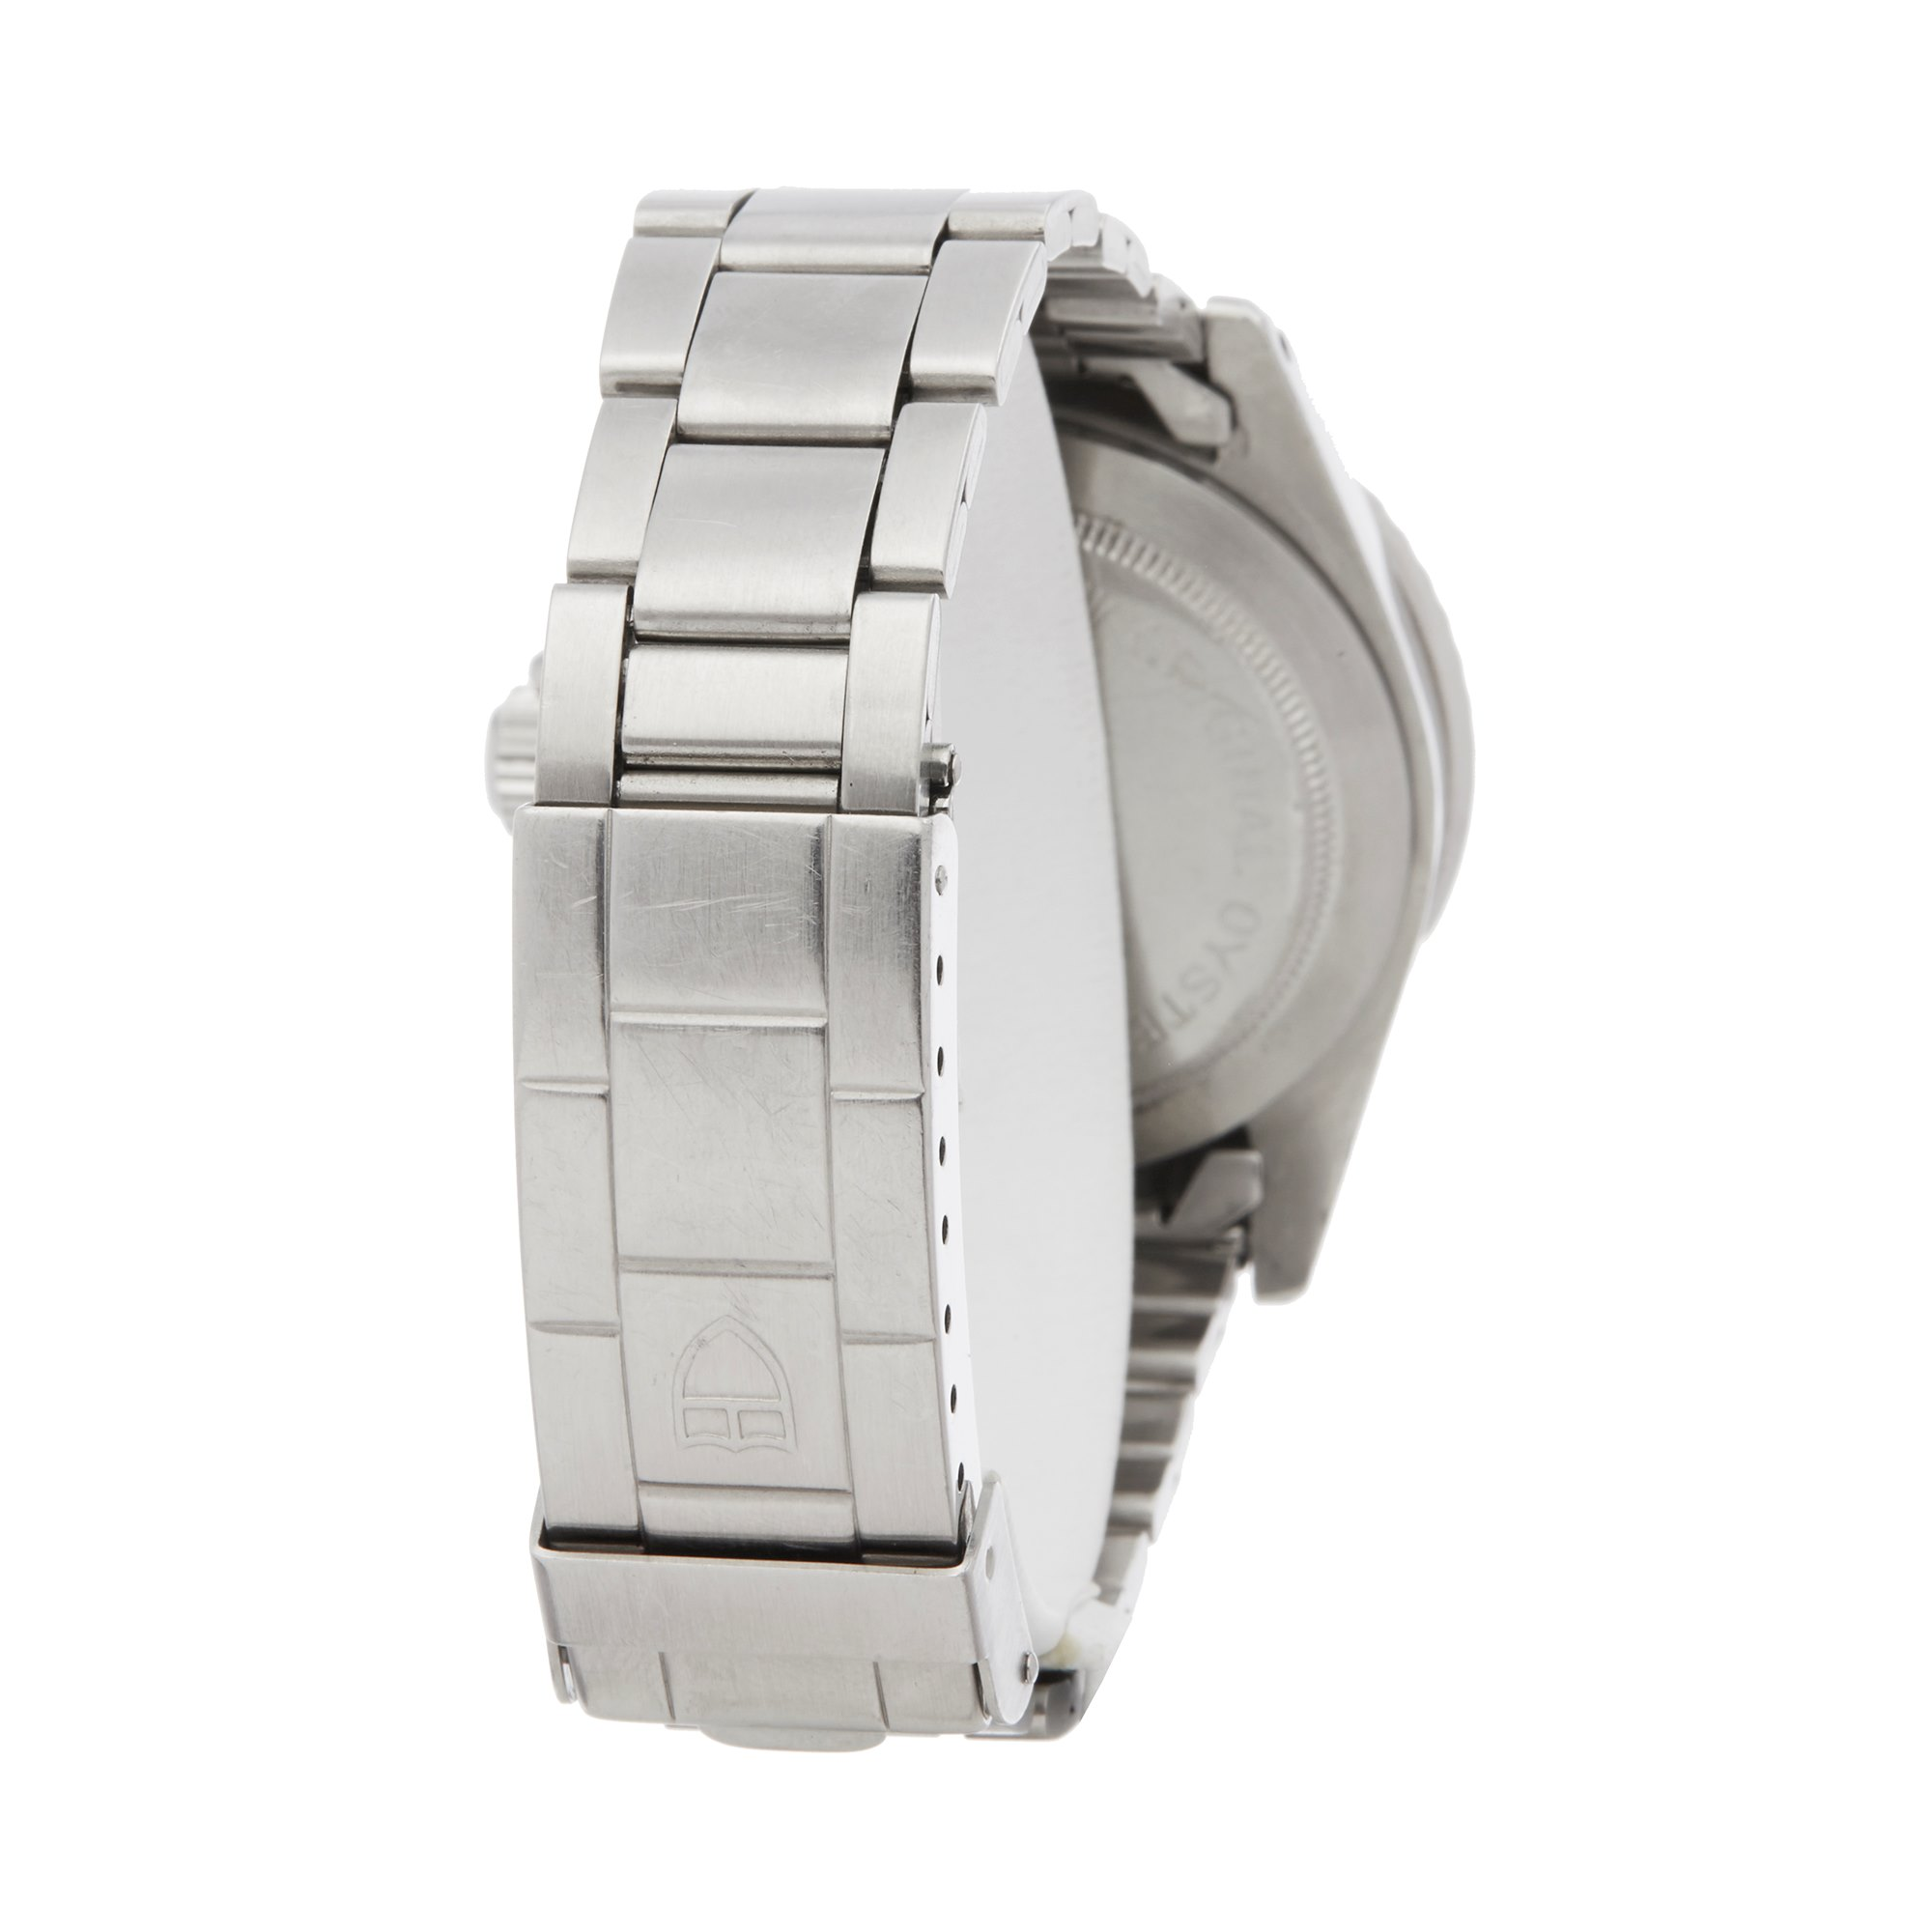 Tudor Submariner Pcg Stainless Steel 7928